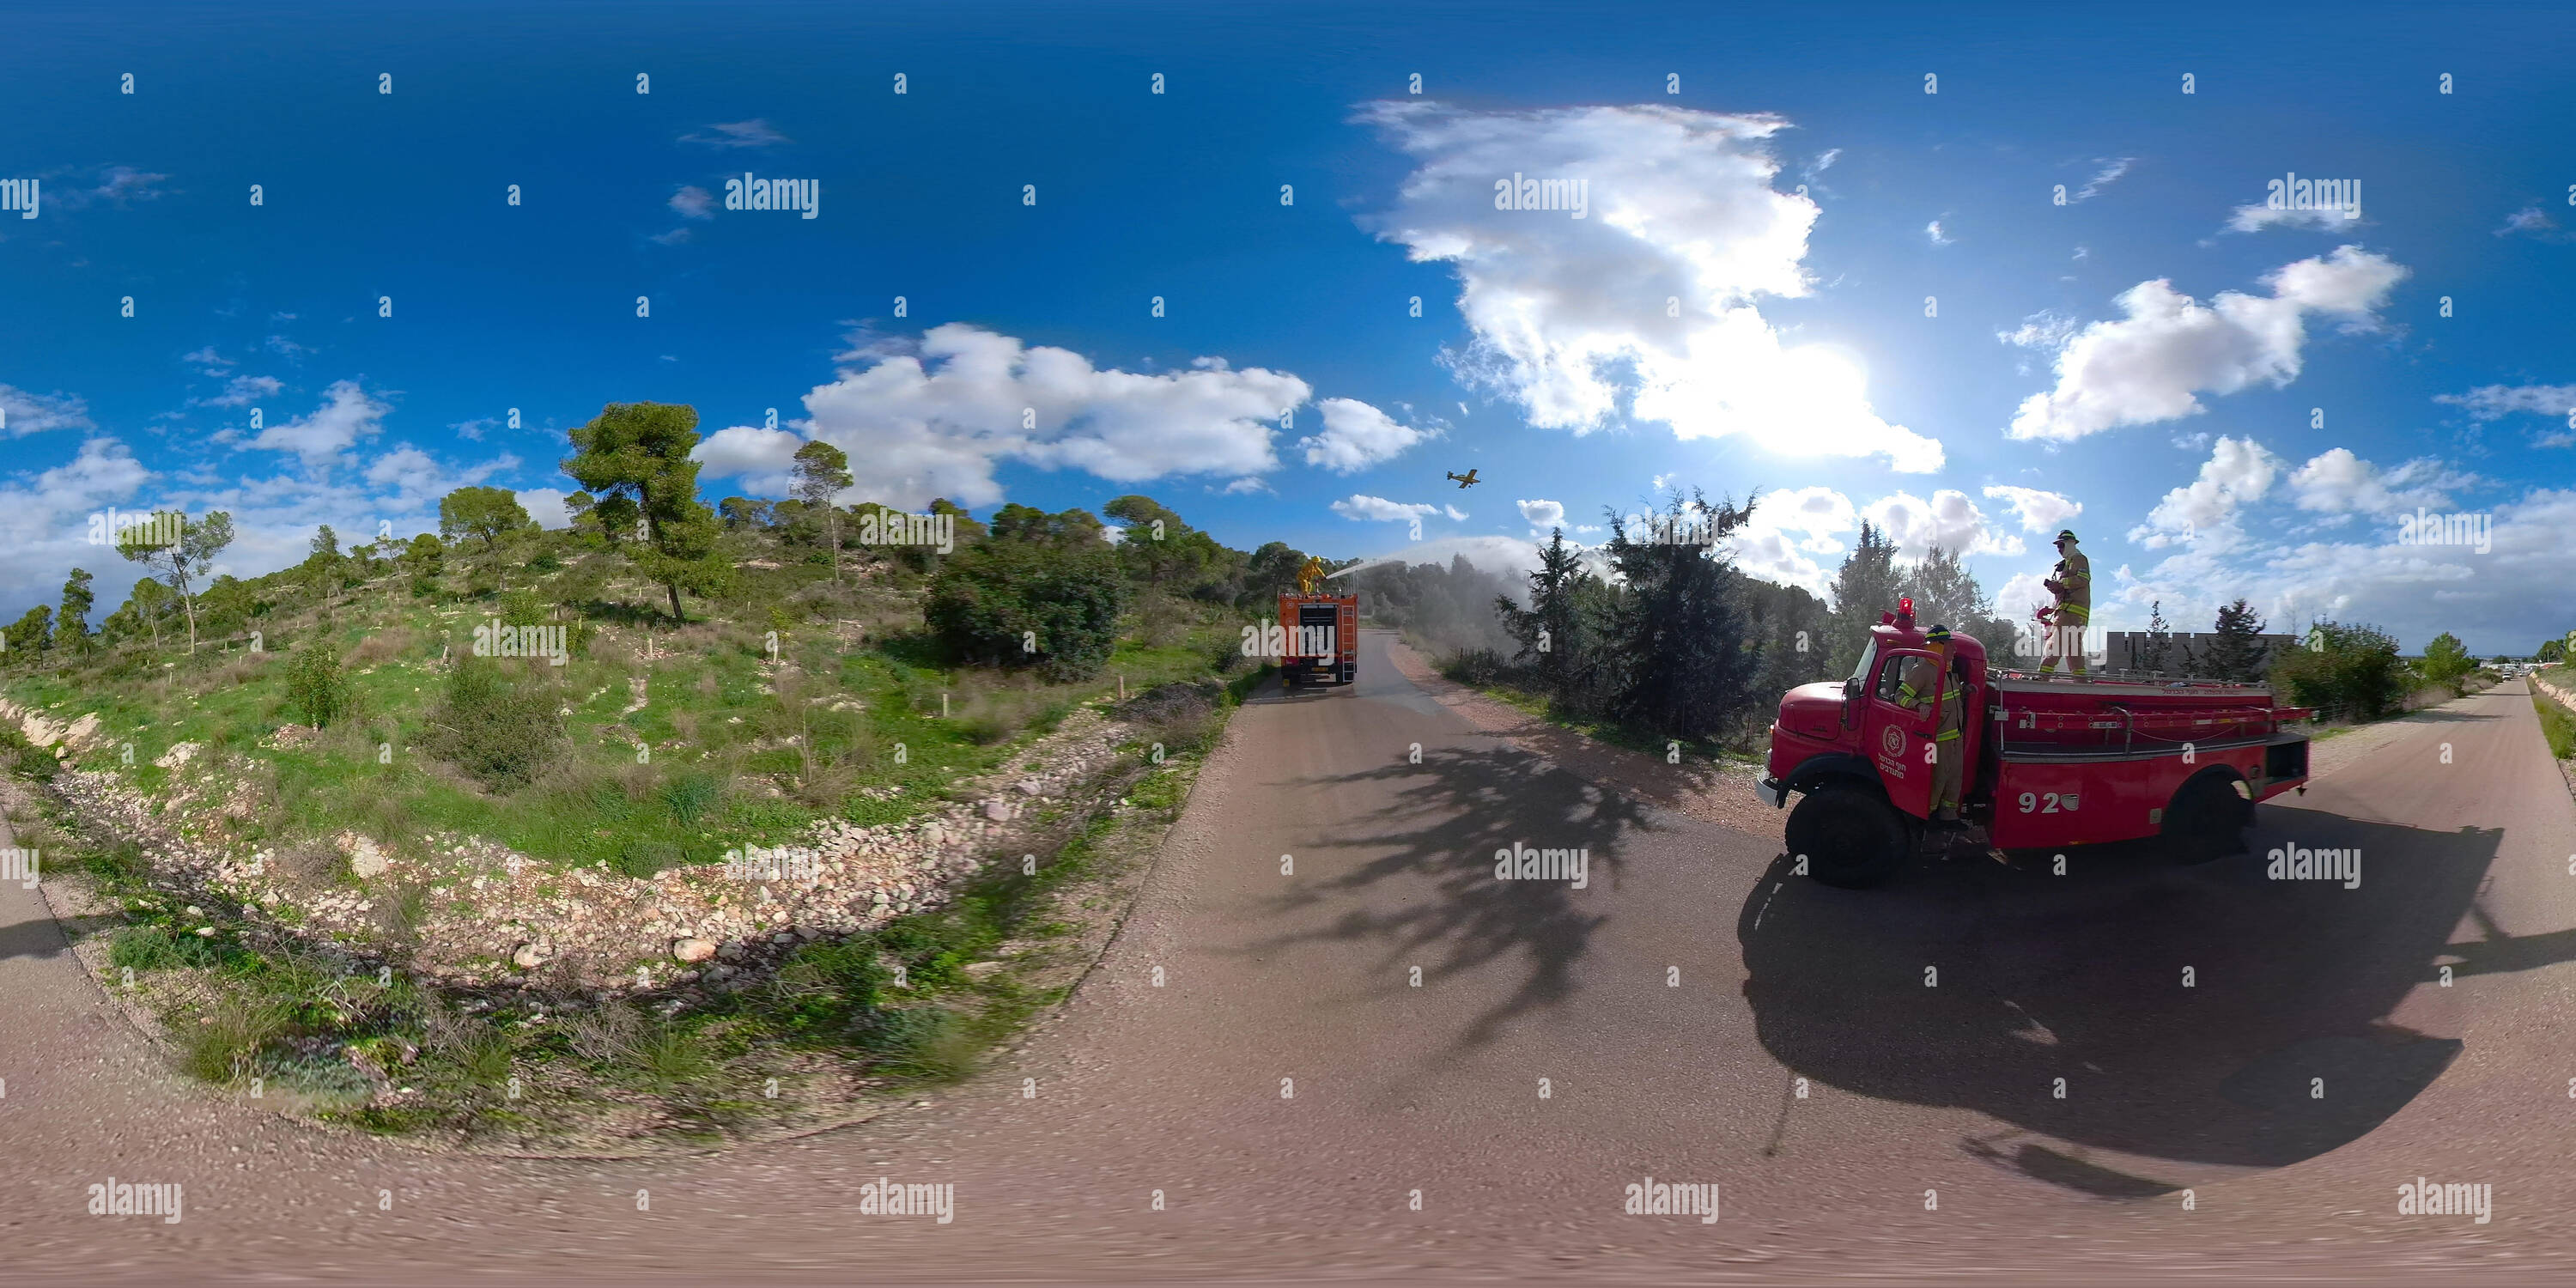 360 degree panoramic view of Firefighting airtanker drop fire retardant on burning forest during a drill. 360 degree photo VR Mt. Carmel, Israel.